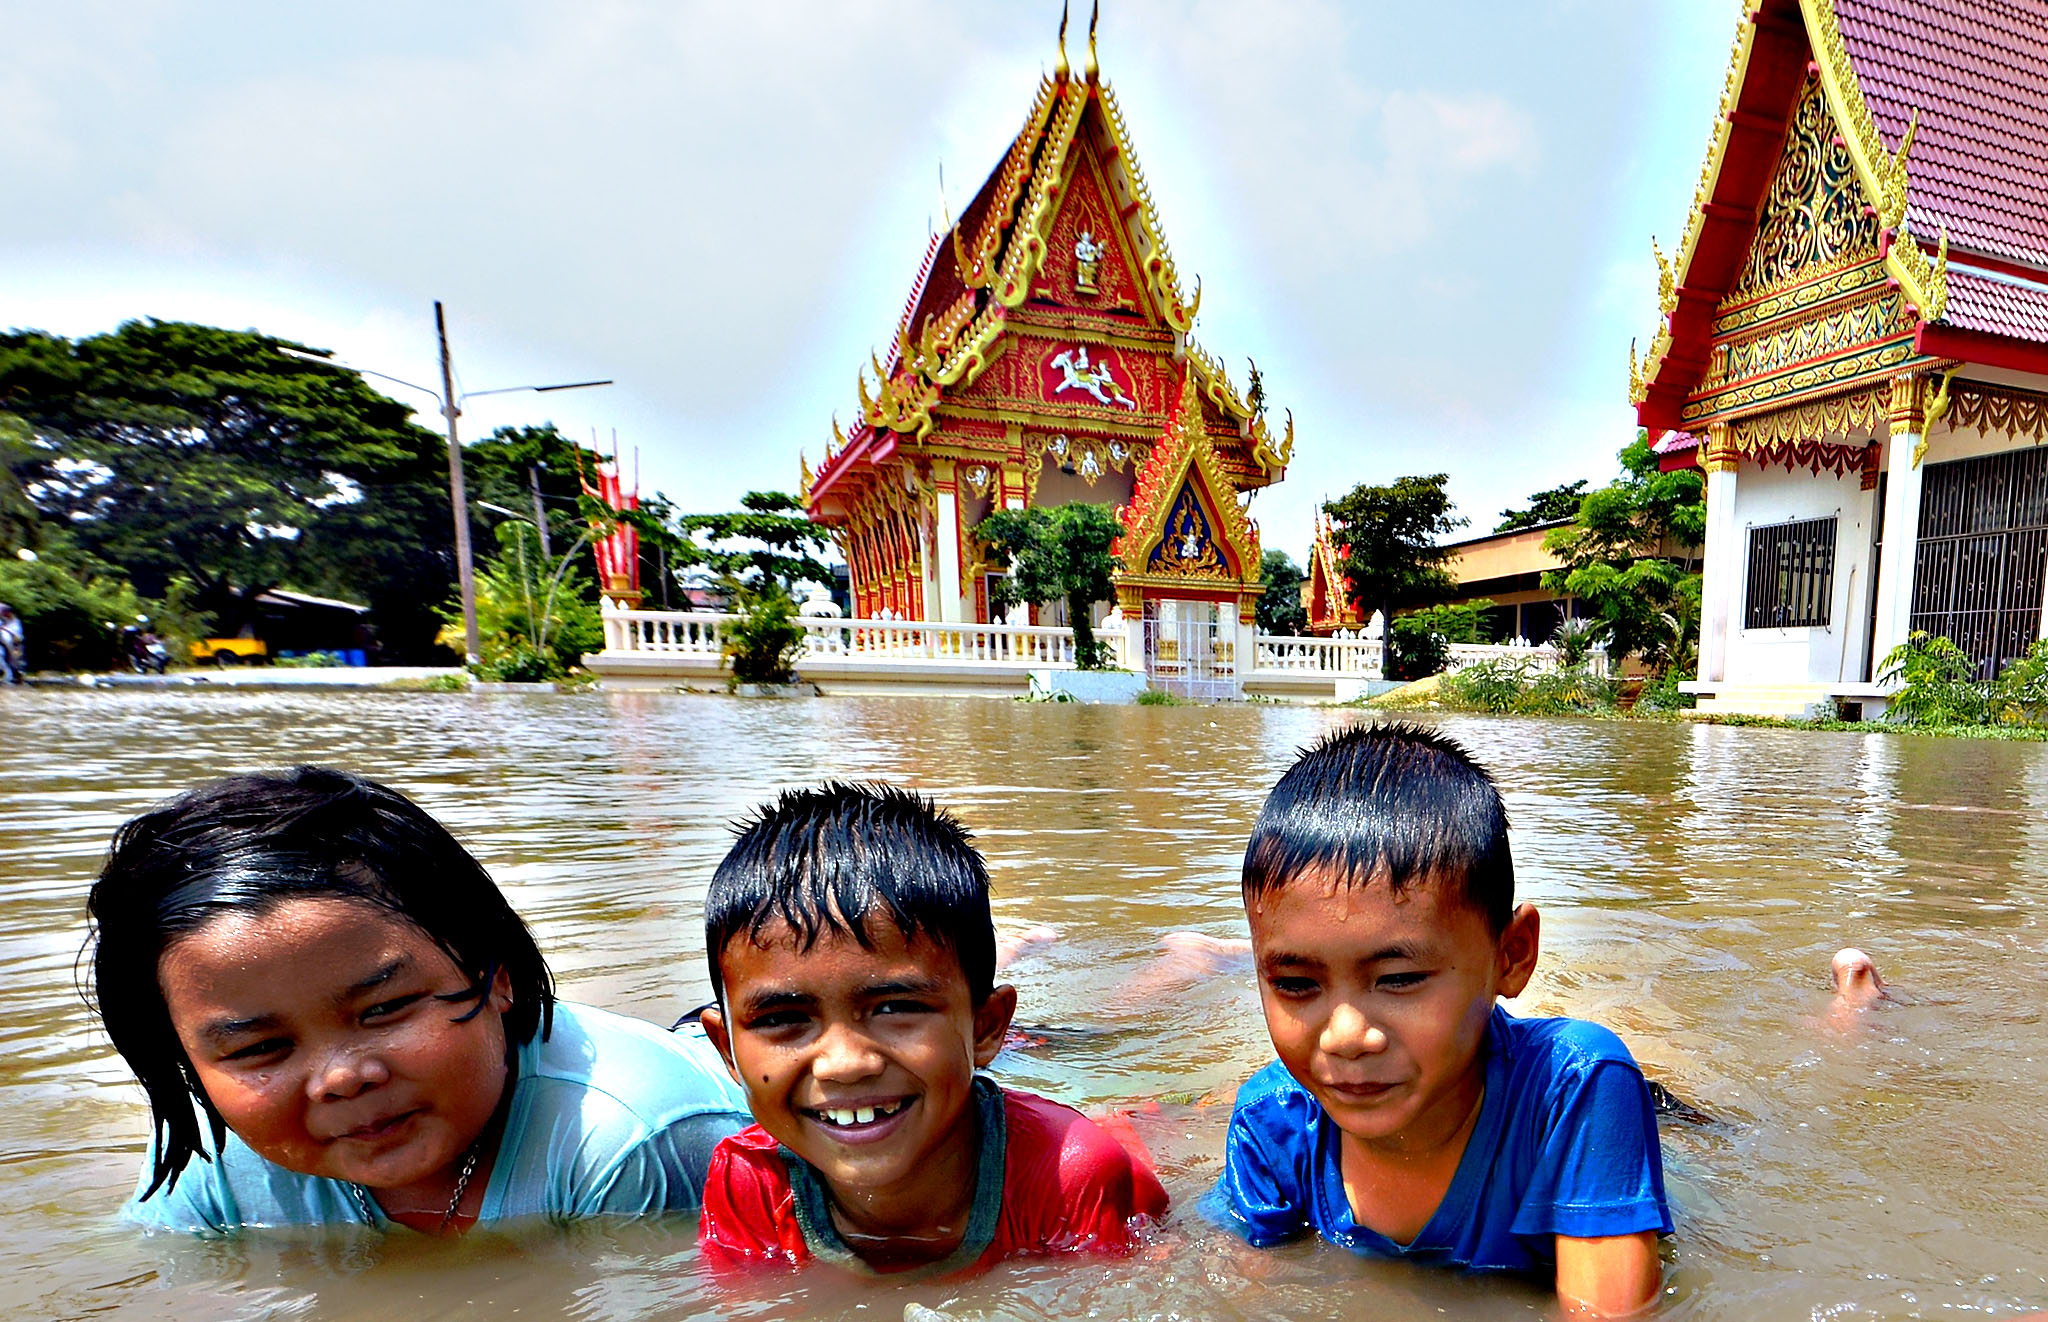 Thai children enjoy play in floodwaters at a buddhist temple in Pathum thani province, north of Bangkok on October 9, 2013. The Disaster Prevention and Mitigation Department reported that 27 provinces in Thailand are still flooded and 31 people have died due to the flood.